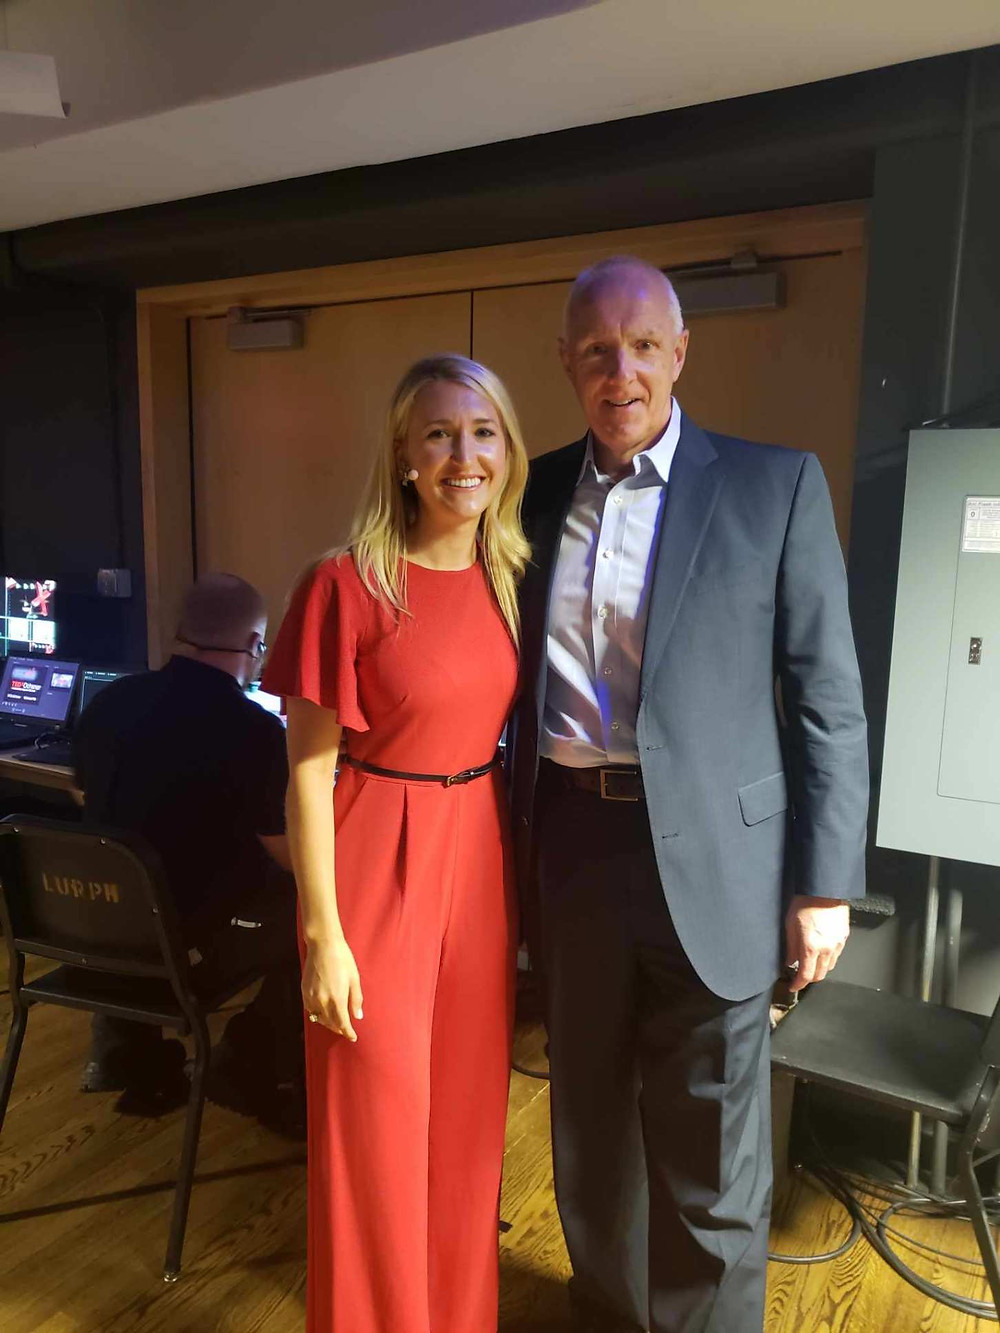 Backstage with Ochsner CEO and President, Warner Thomas.